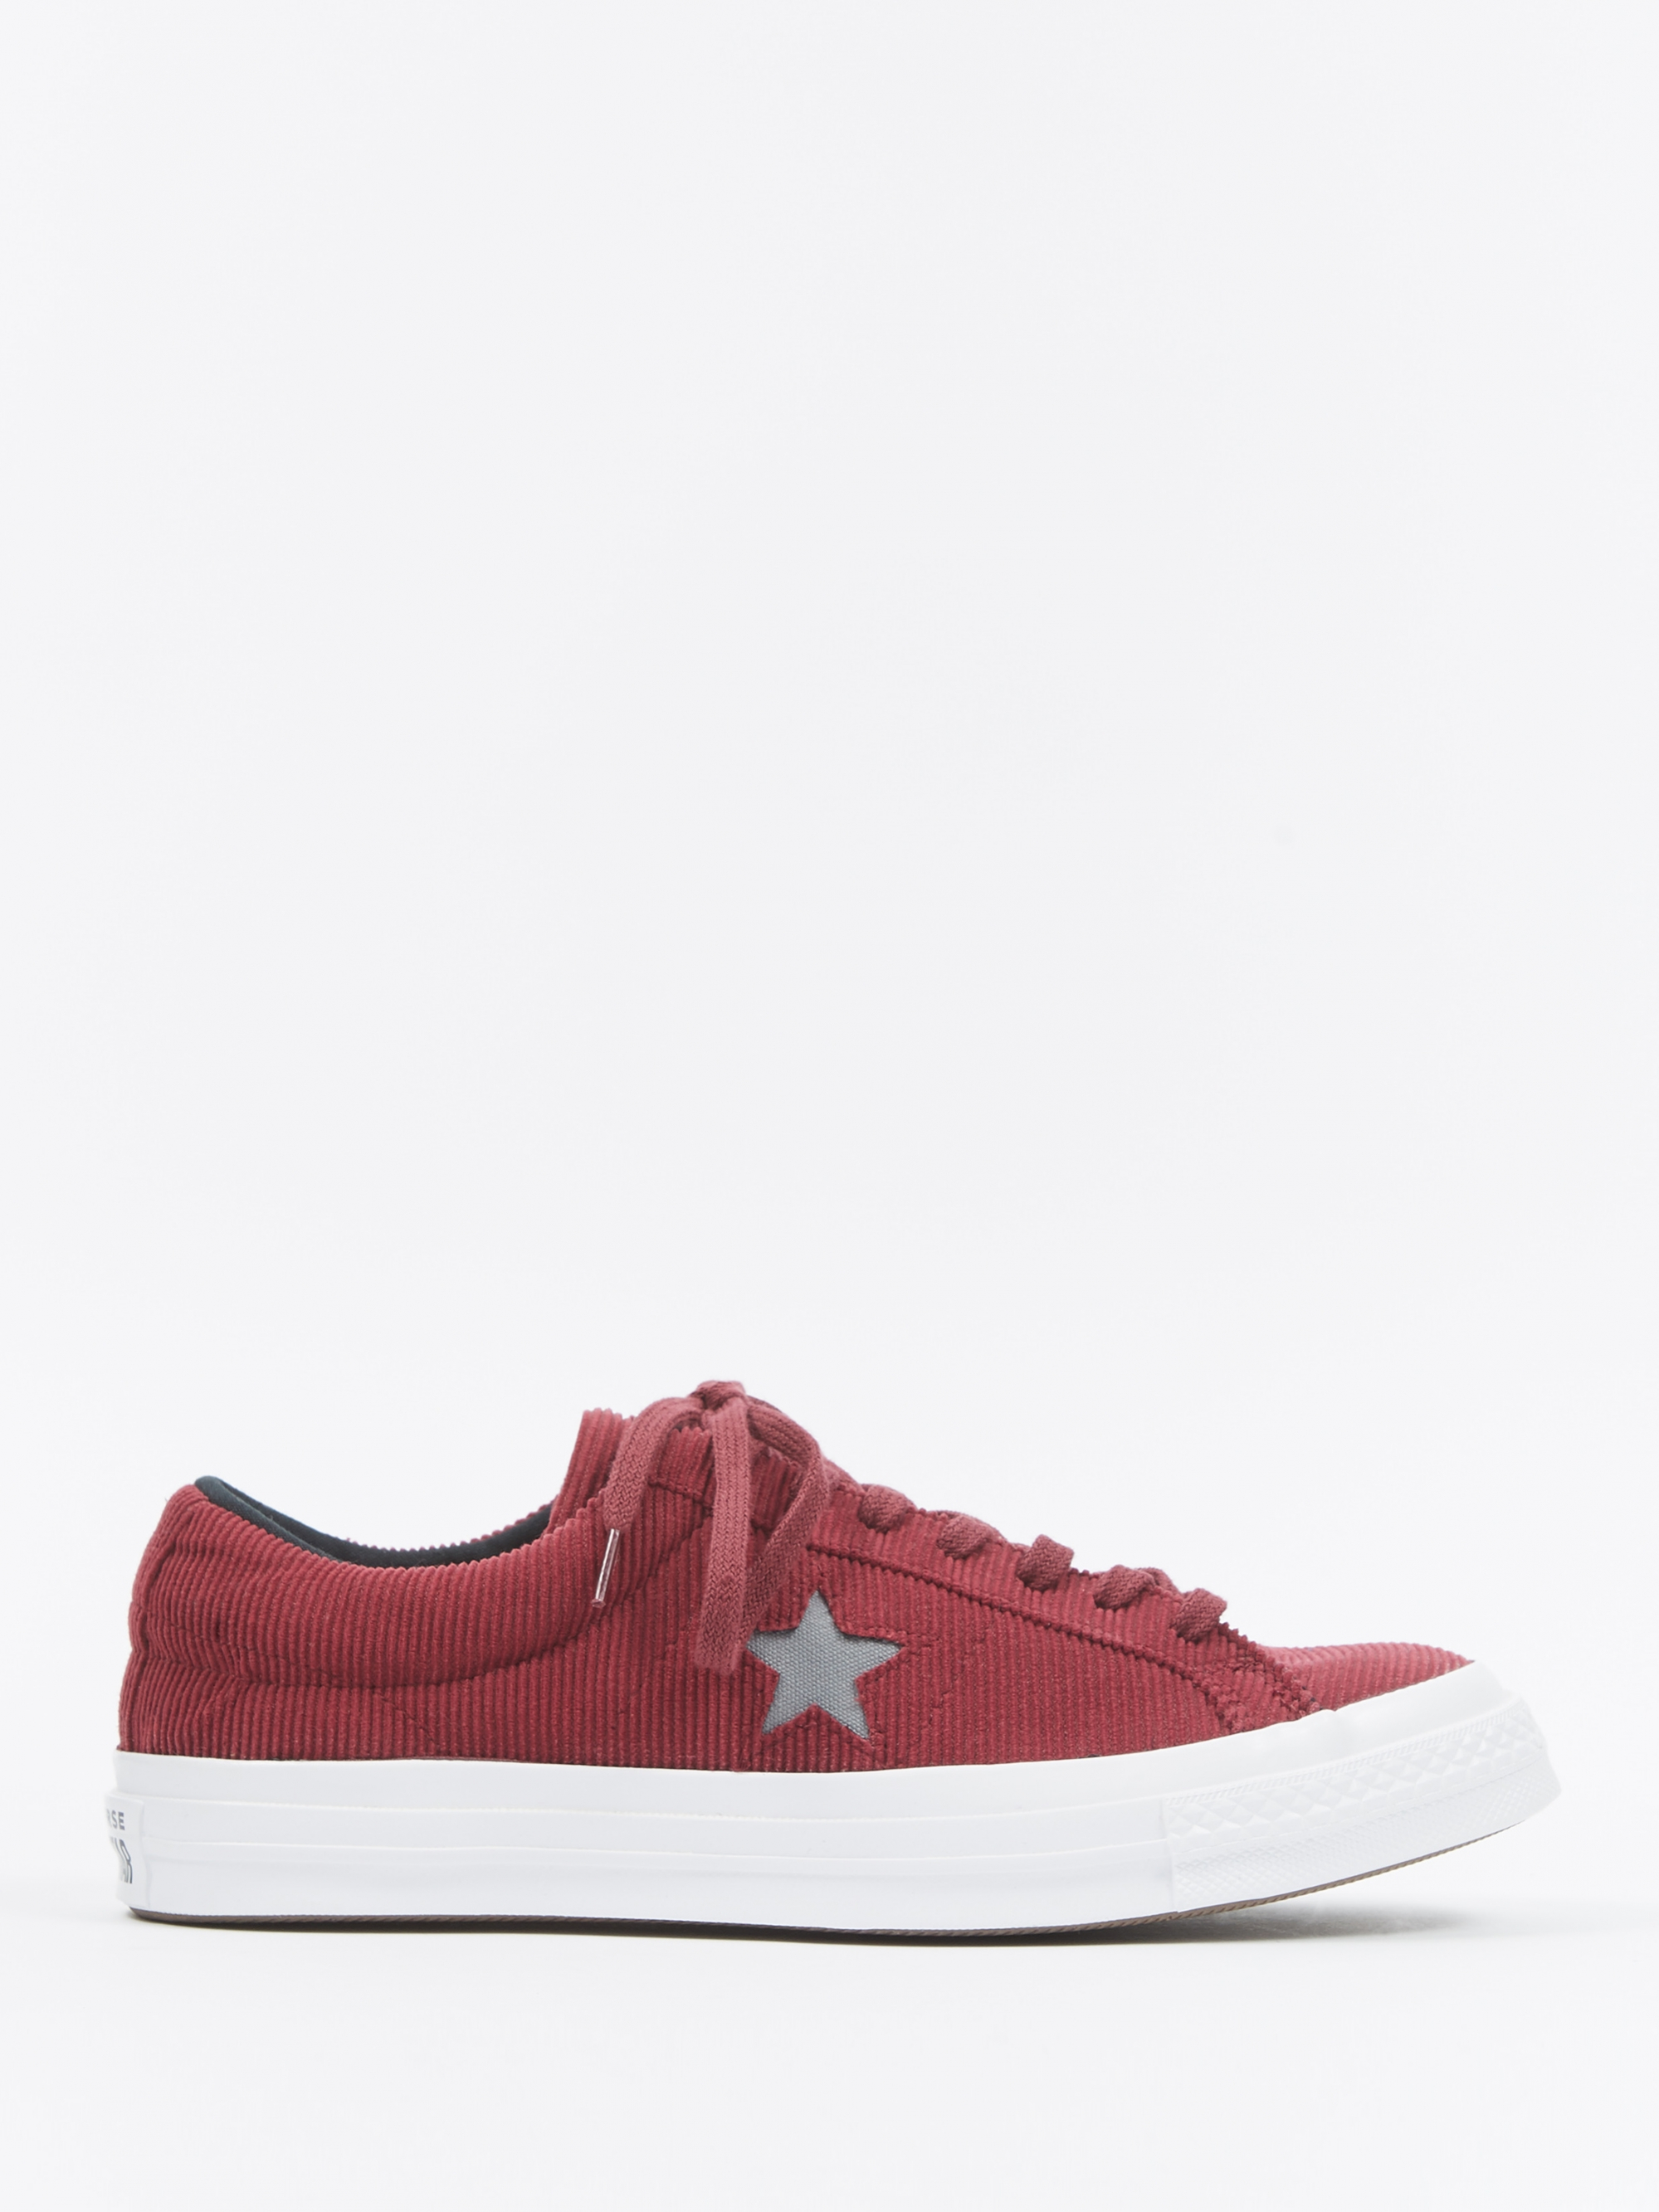 Converse One Star Ox Corduroy - Dark Burgundy Mason a92925087